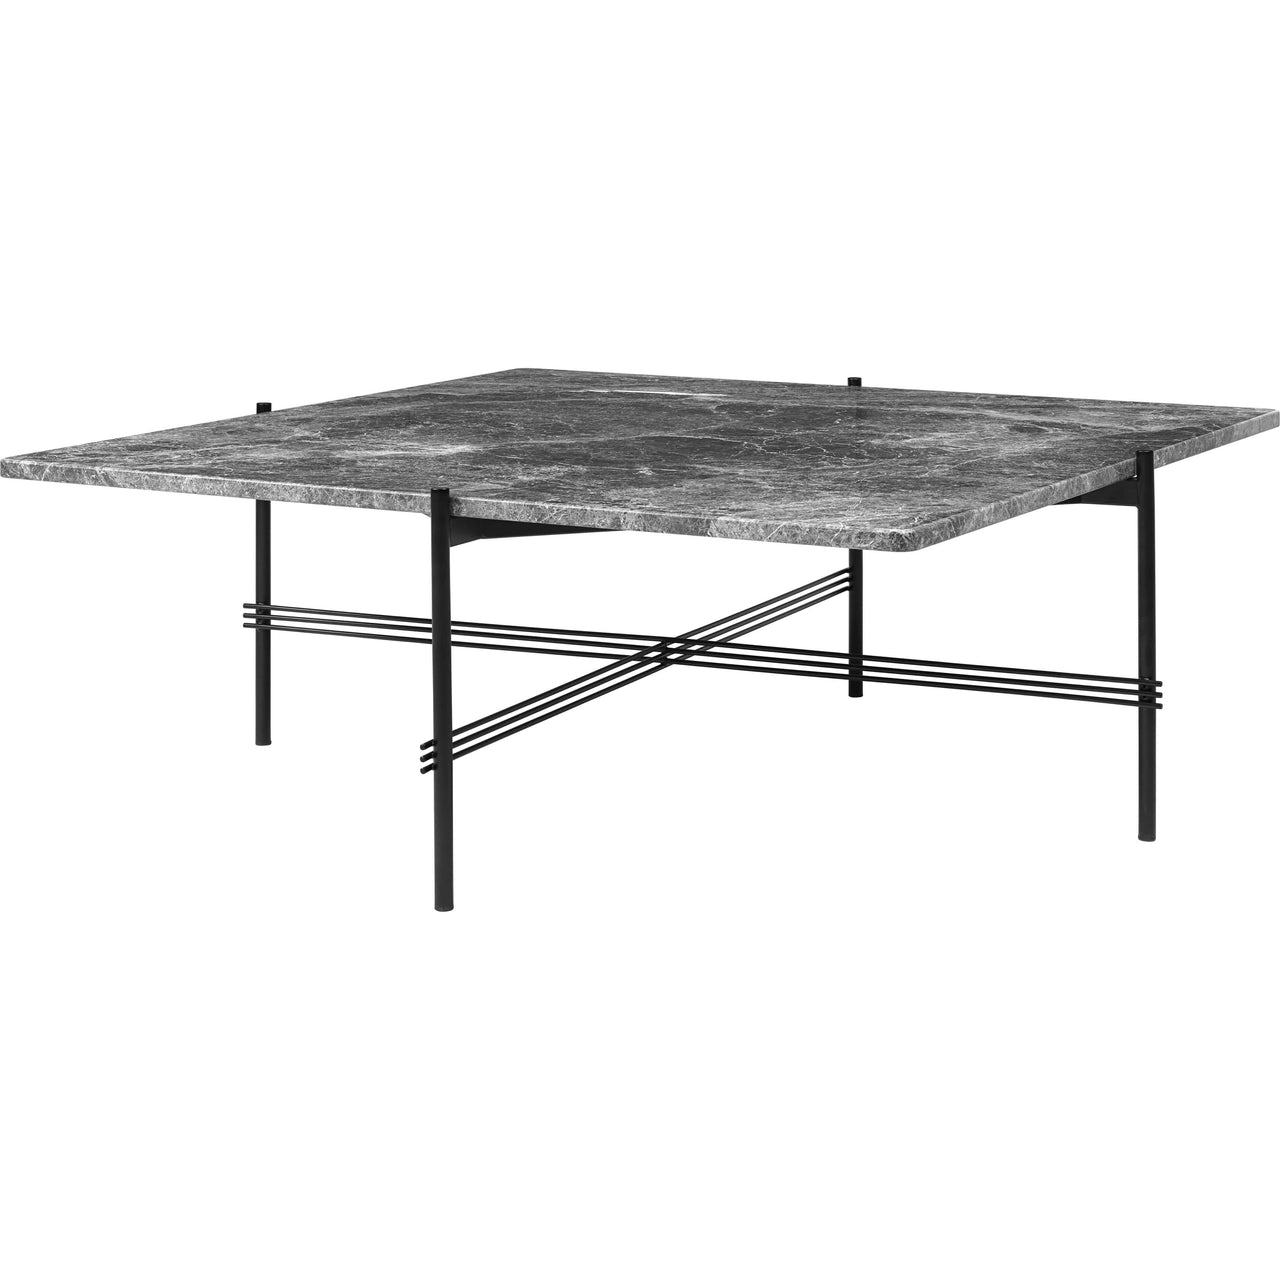 TS Square Coffee Table: Medium + Grey Emperador Marble